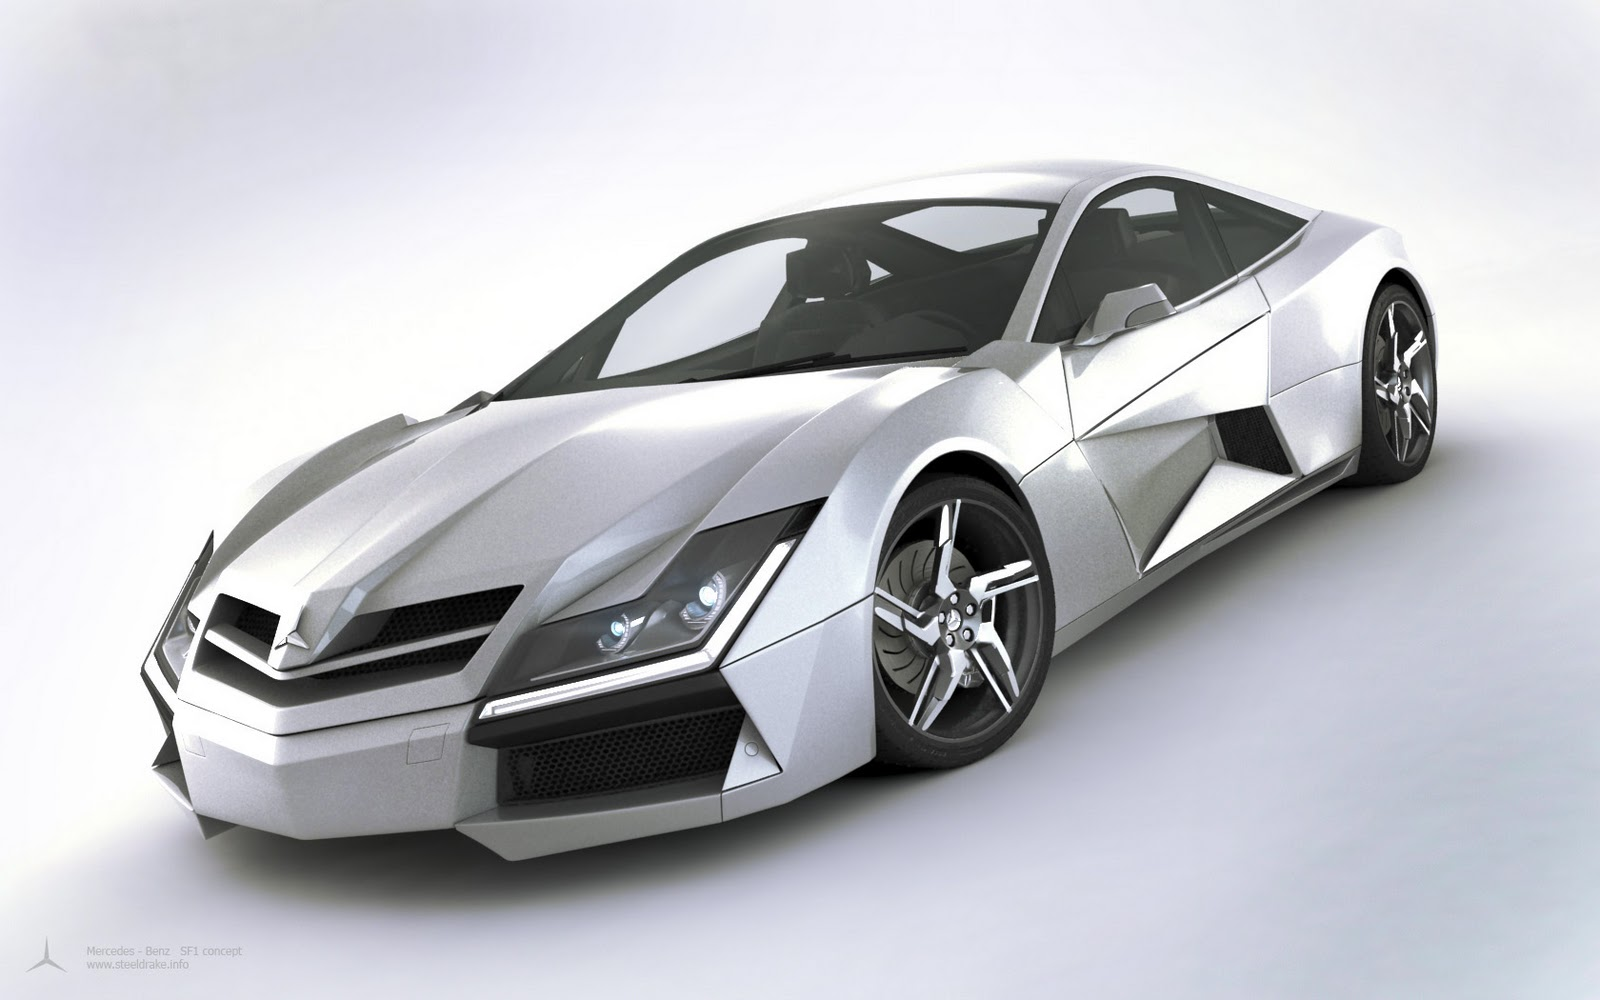 Super punch mercedes benz sf1 concept car for Mercedes benz cars images